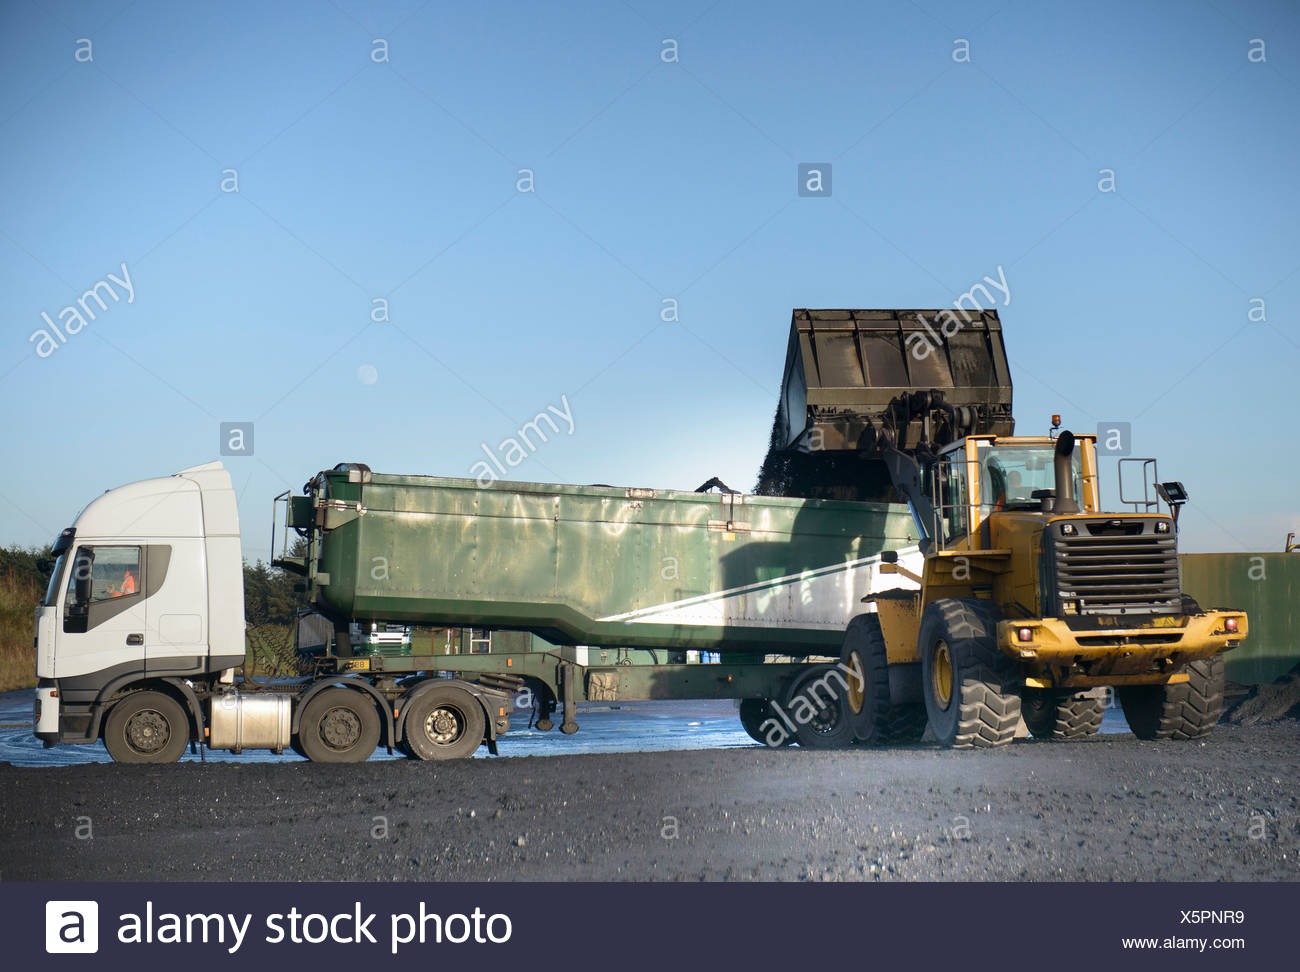 Coal loaded onto truck at surface mine - Stock Image